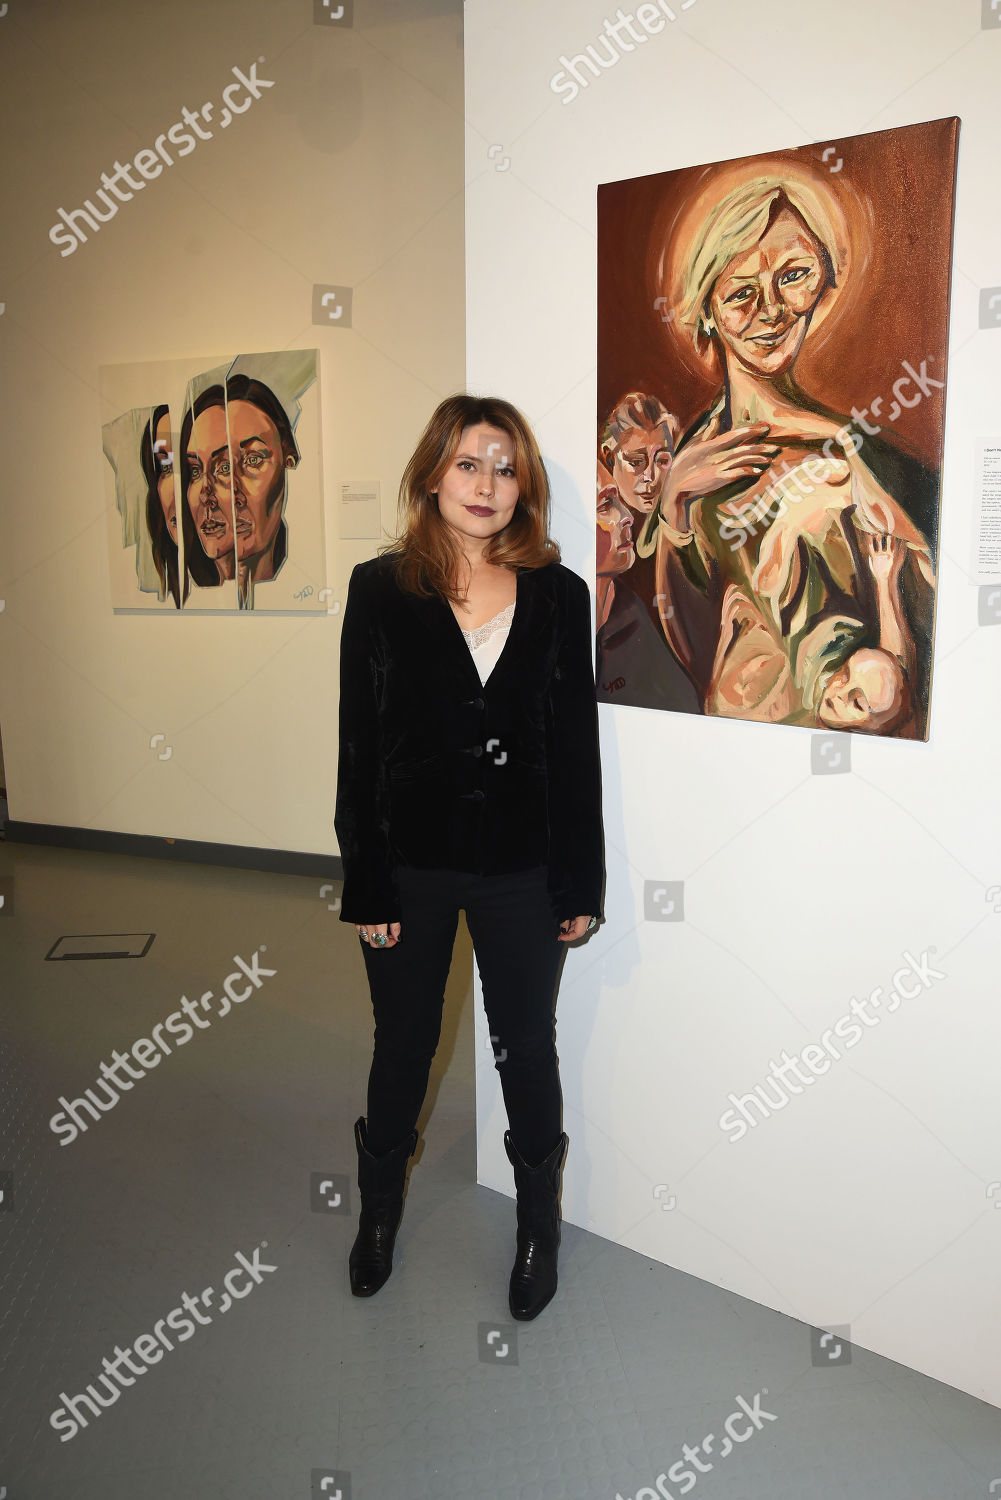 Triana Largest Solo Exhibition Date Introducing New Body Editorial Stock Photo Stock Image Shutterstock